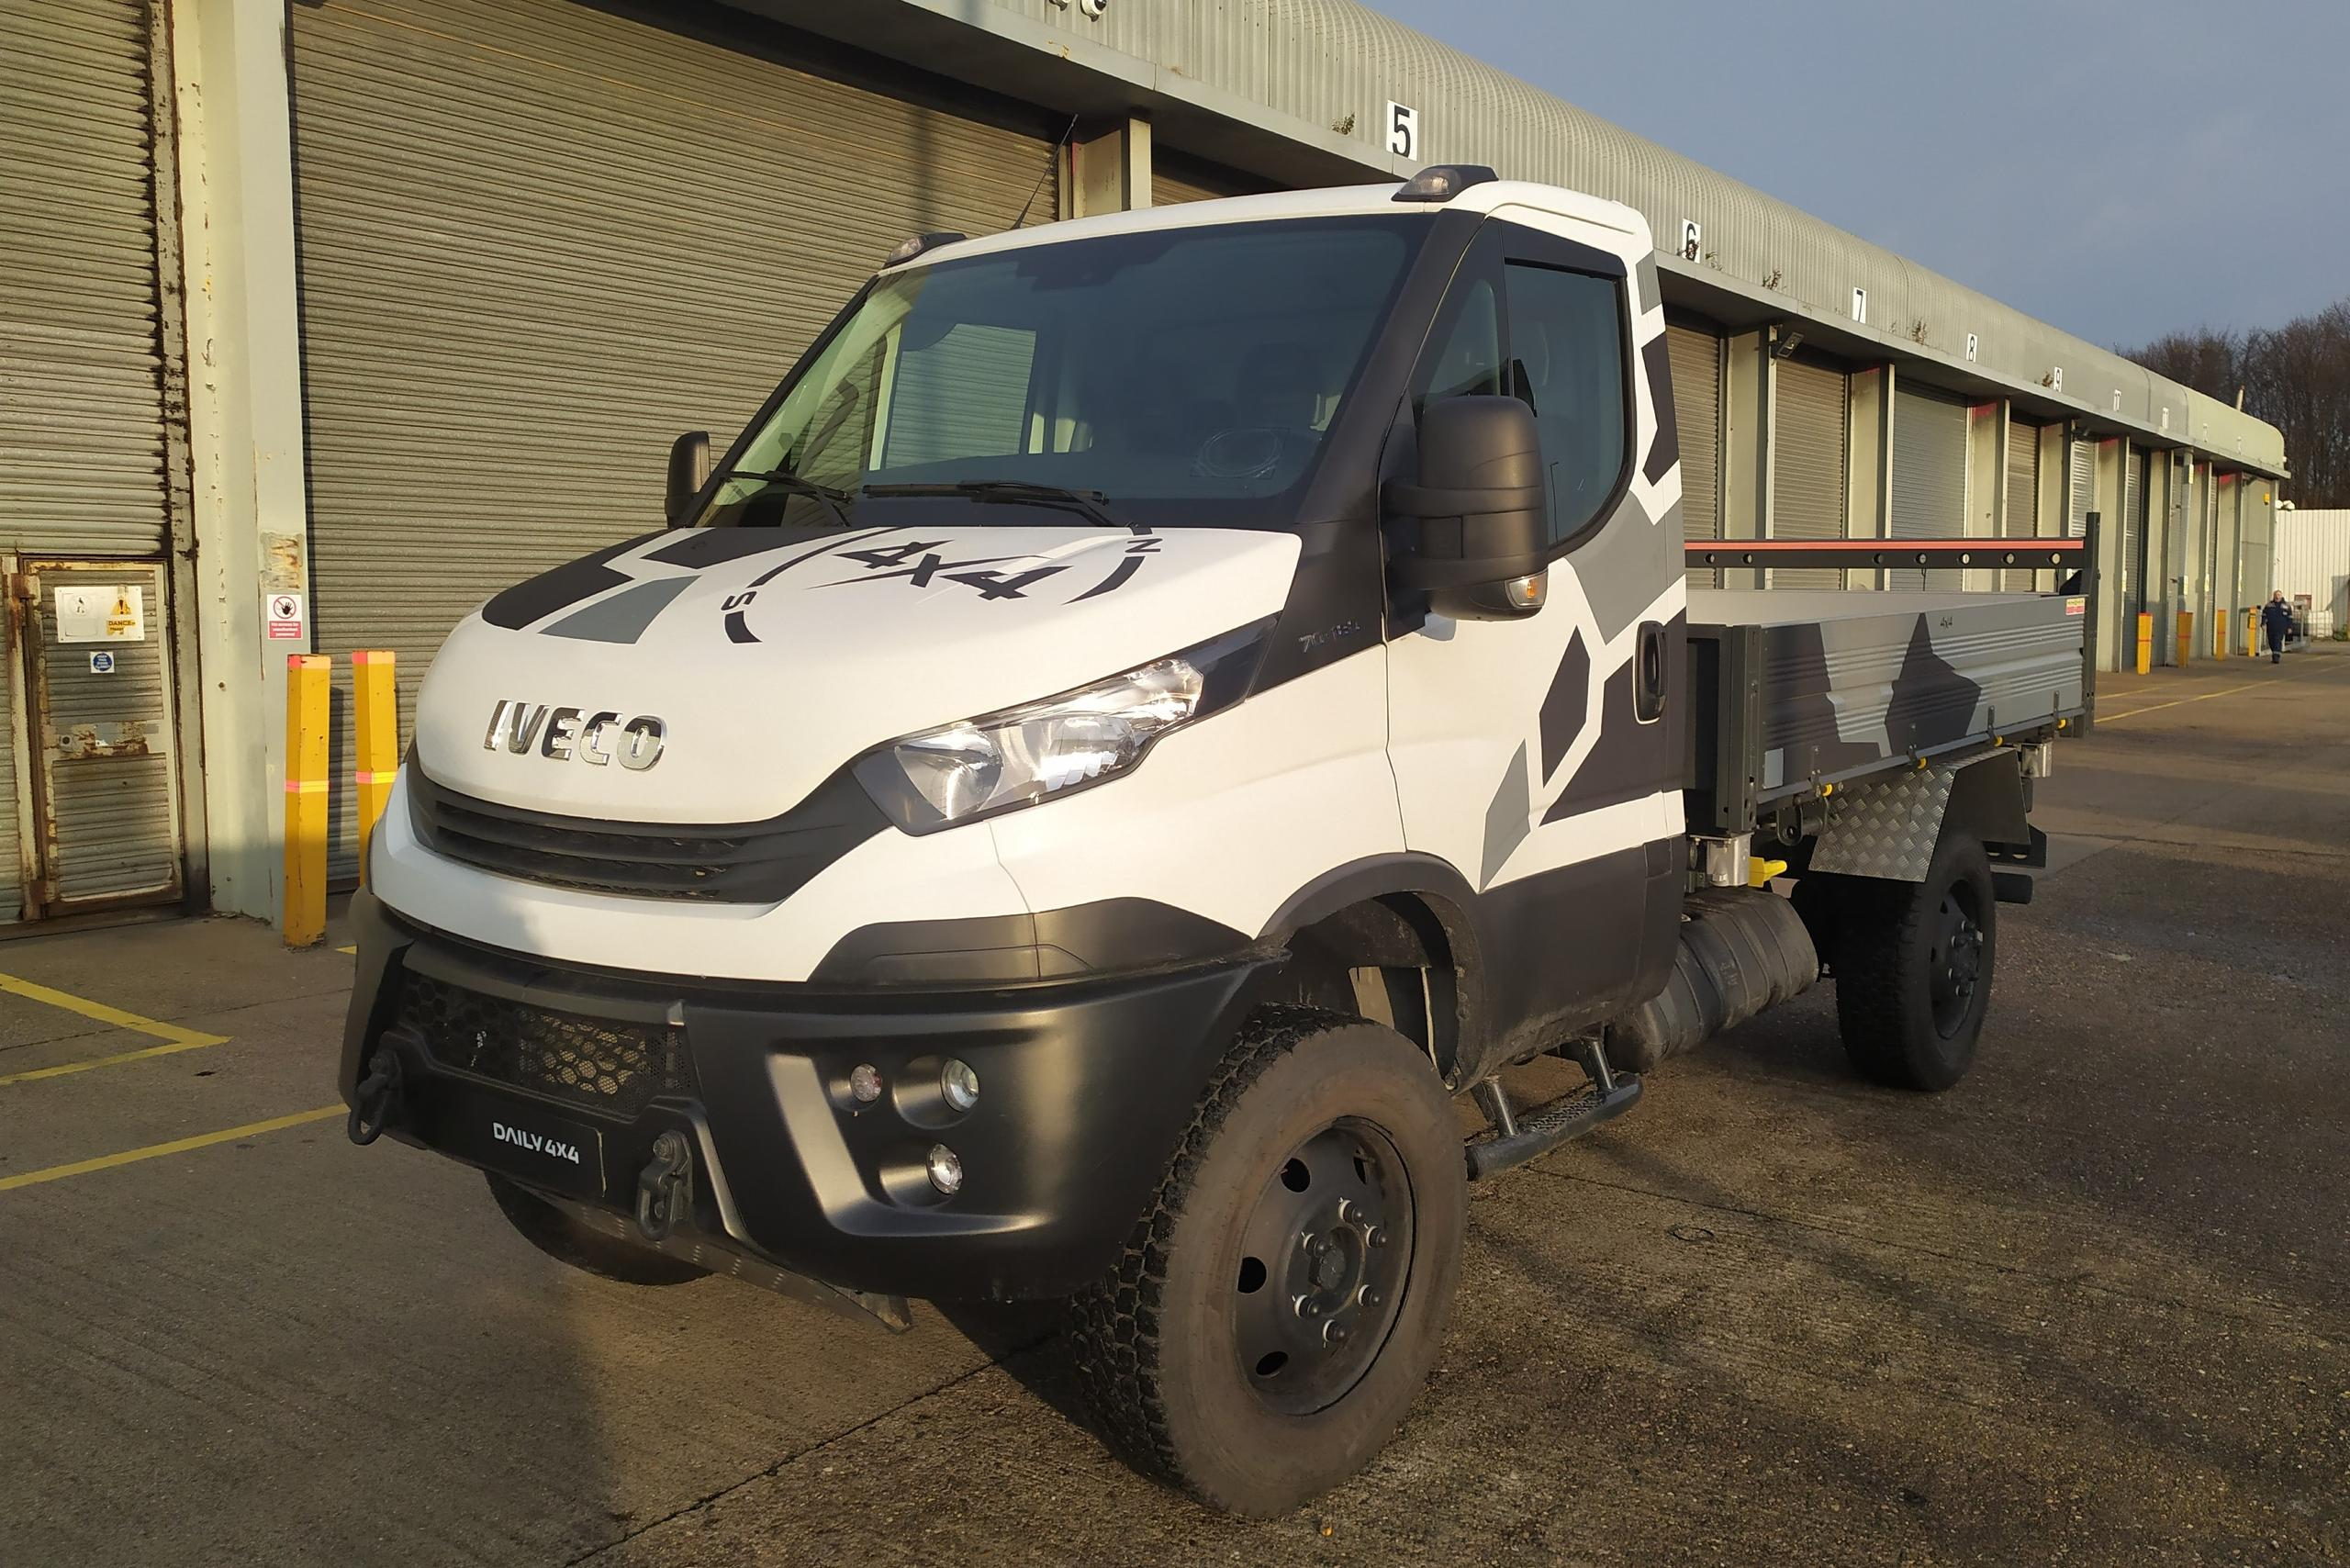 New IVECO Daily 4X4 arrives at NETV in Hull